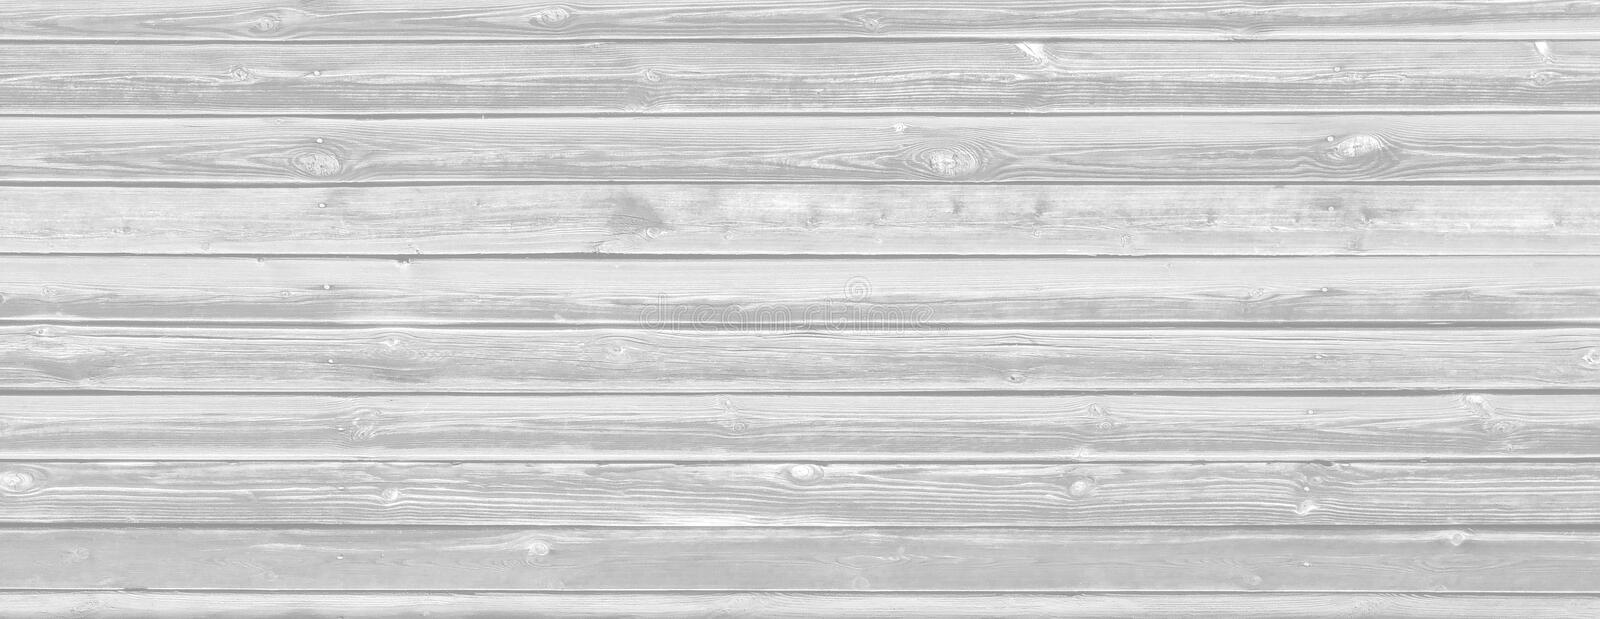 Old bleached wooden planks background. Old bleached wooden planks background texture for your design royalty free stock images